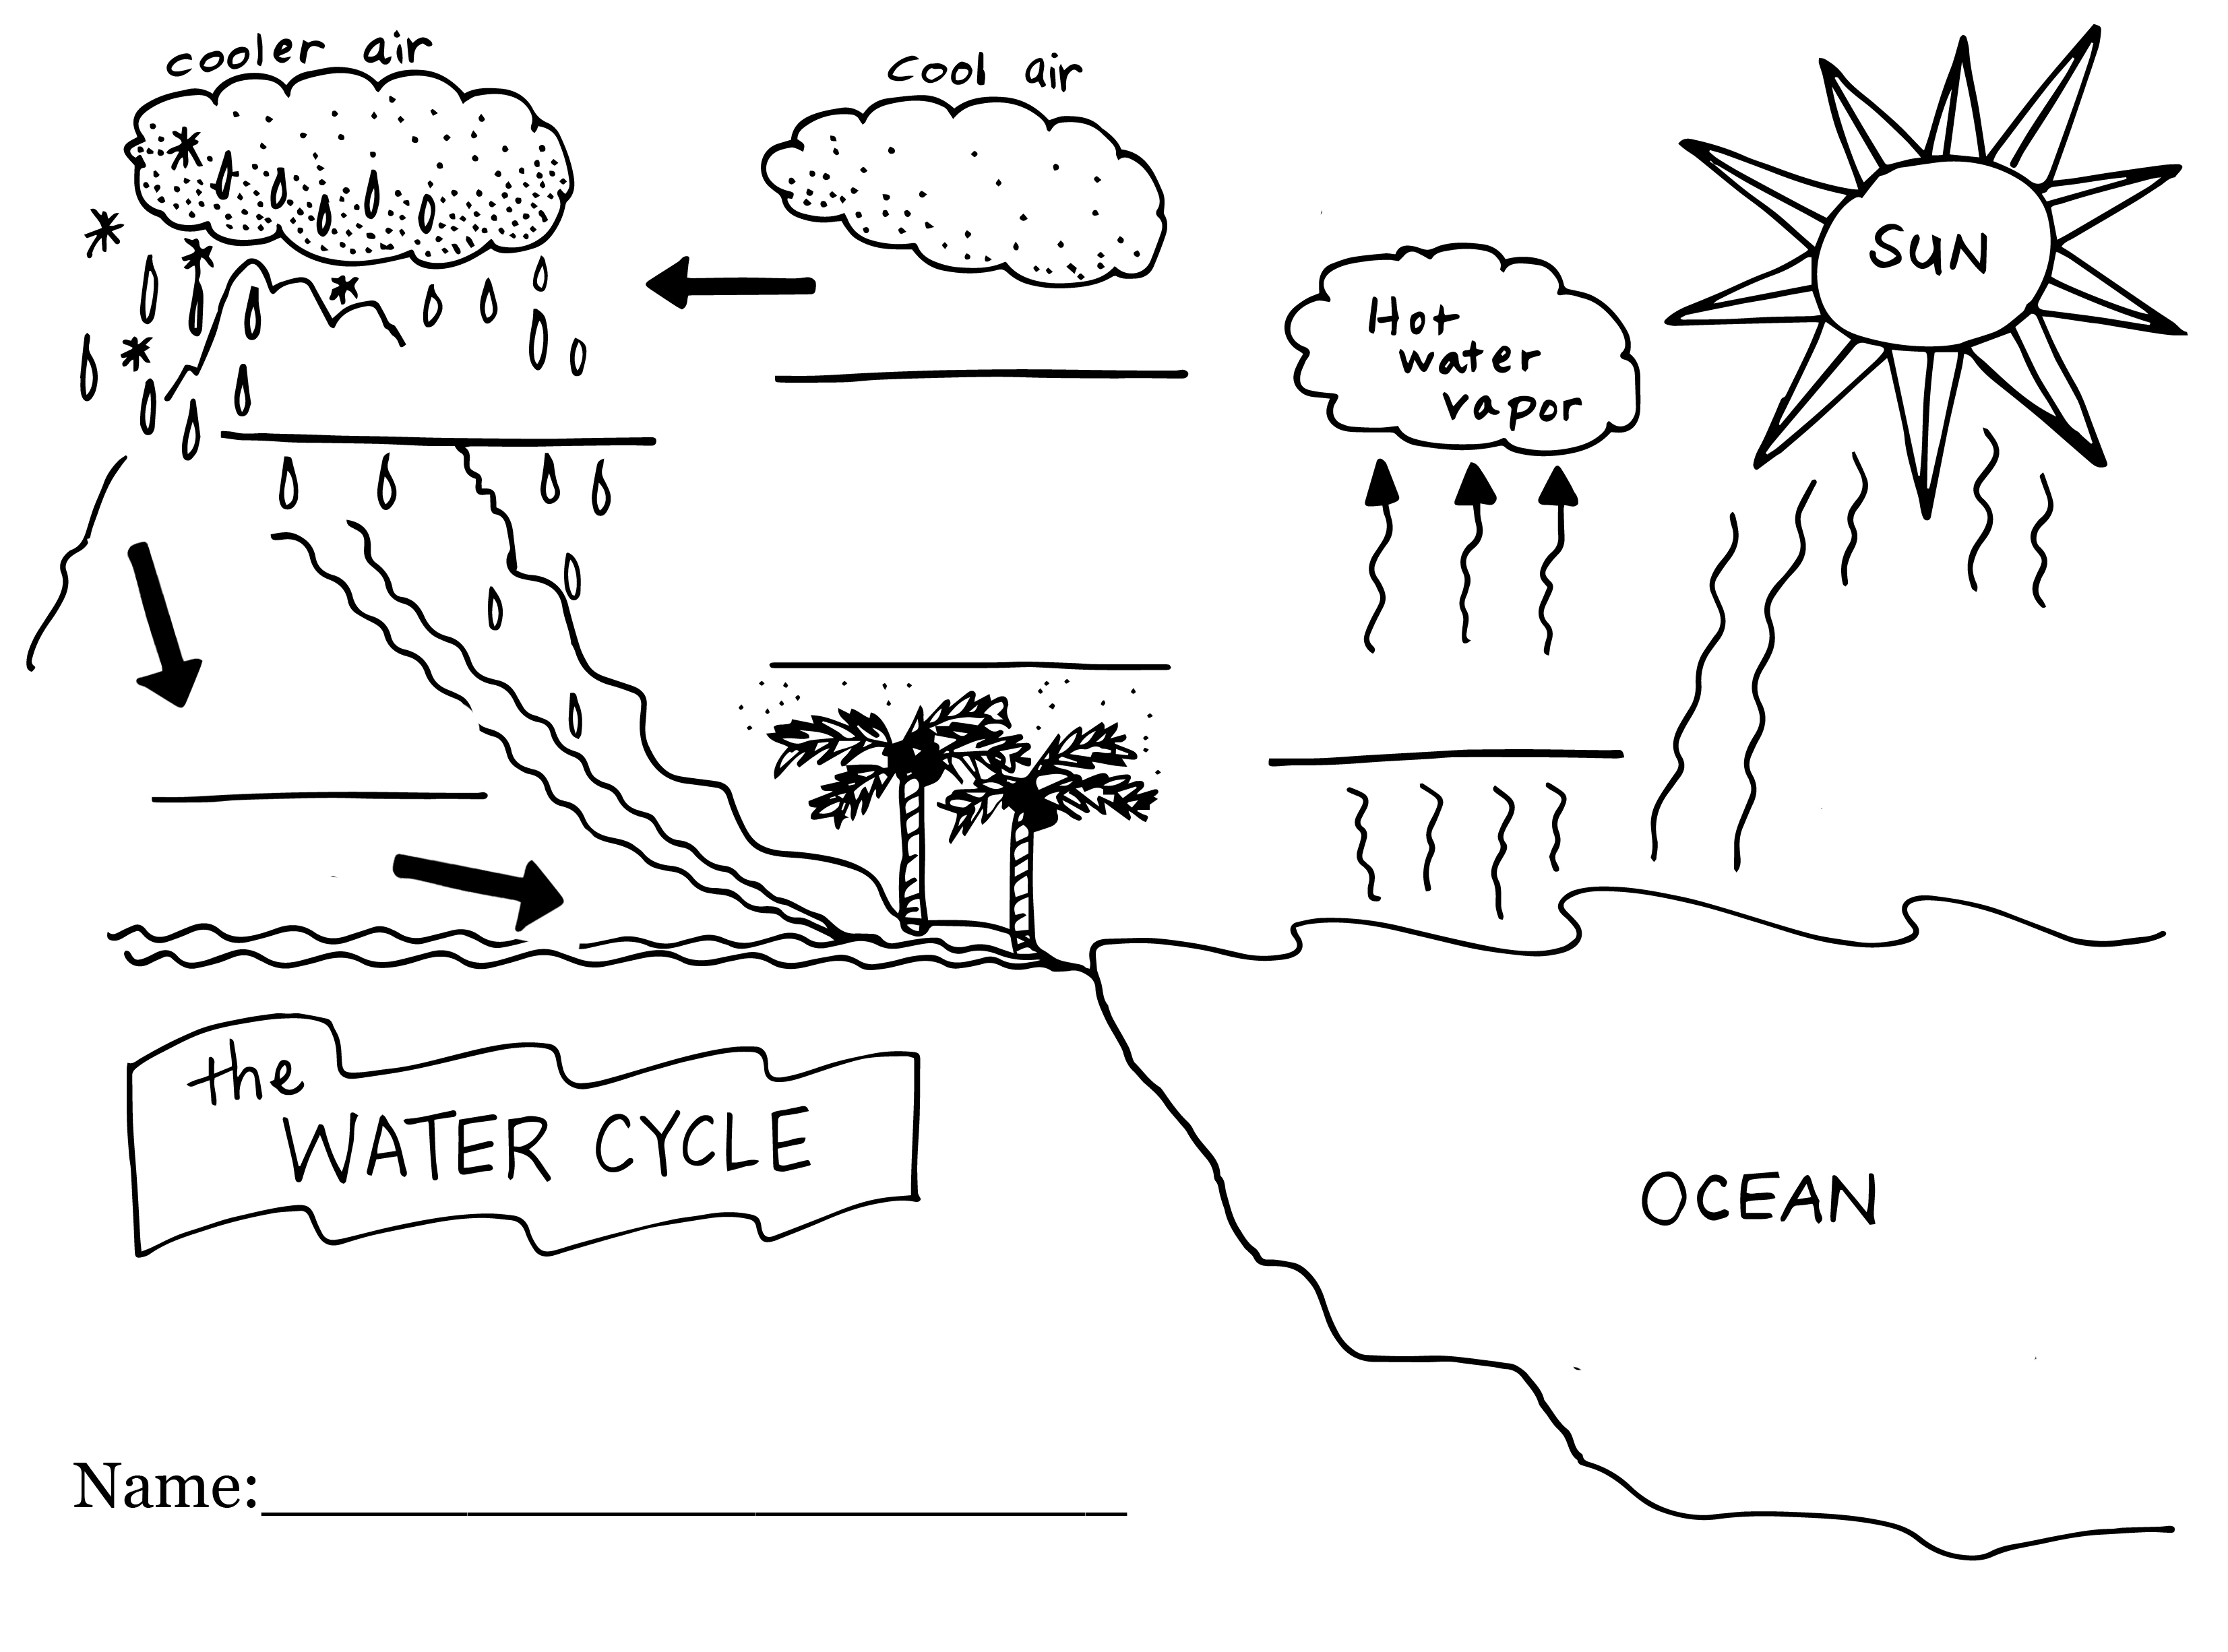 water cycle diagram worksheet answers